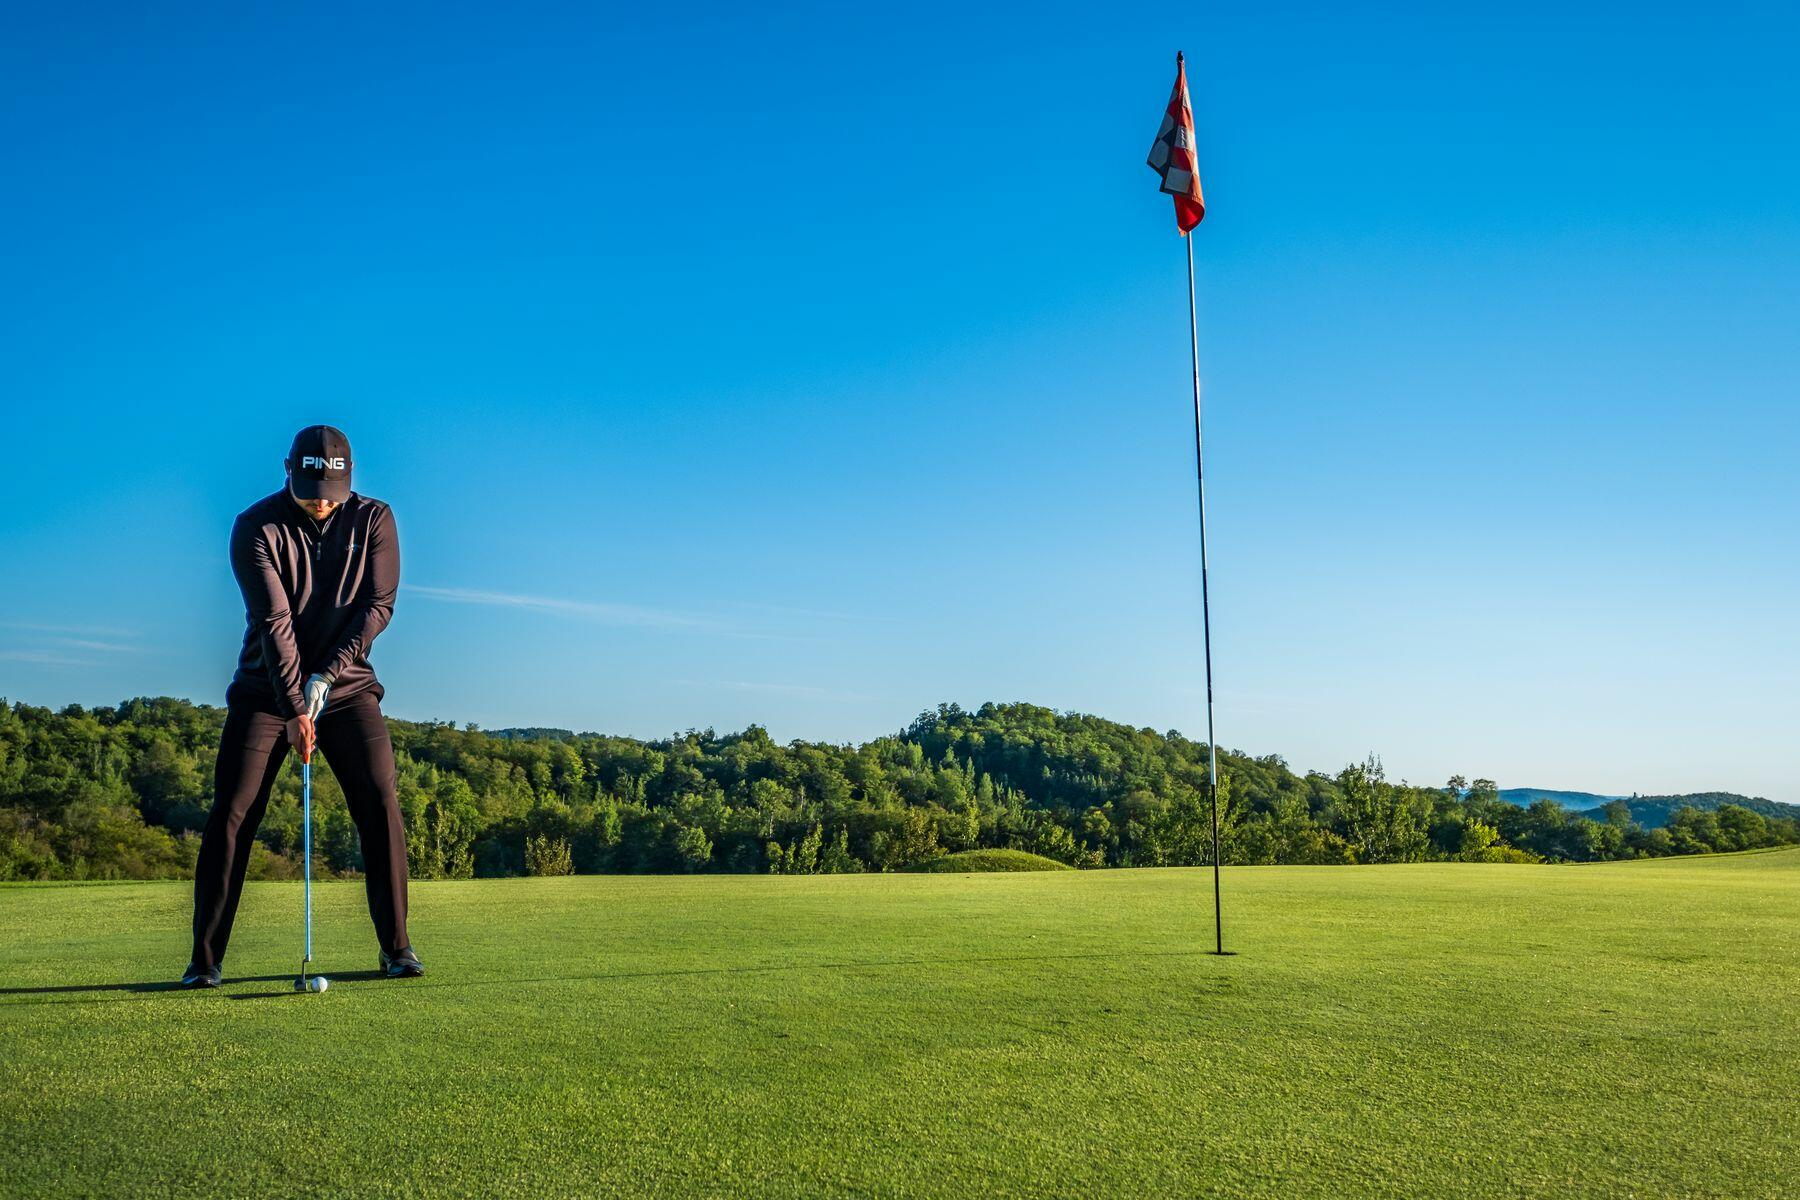 A Man on a putting green